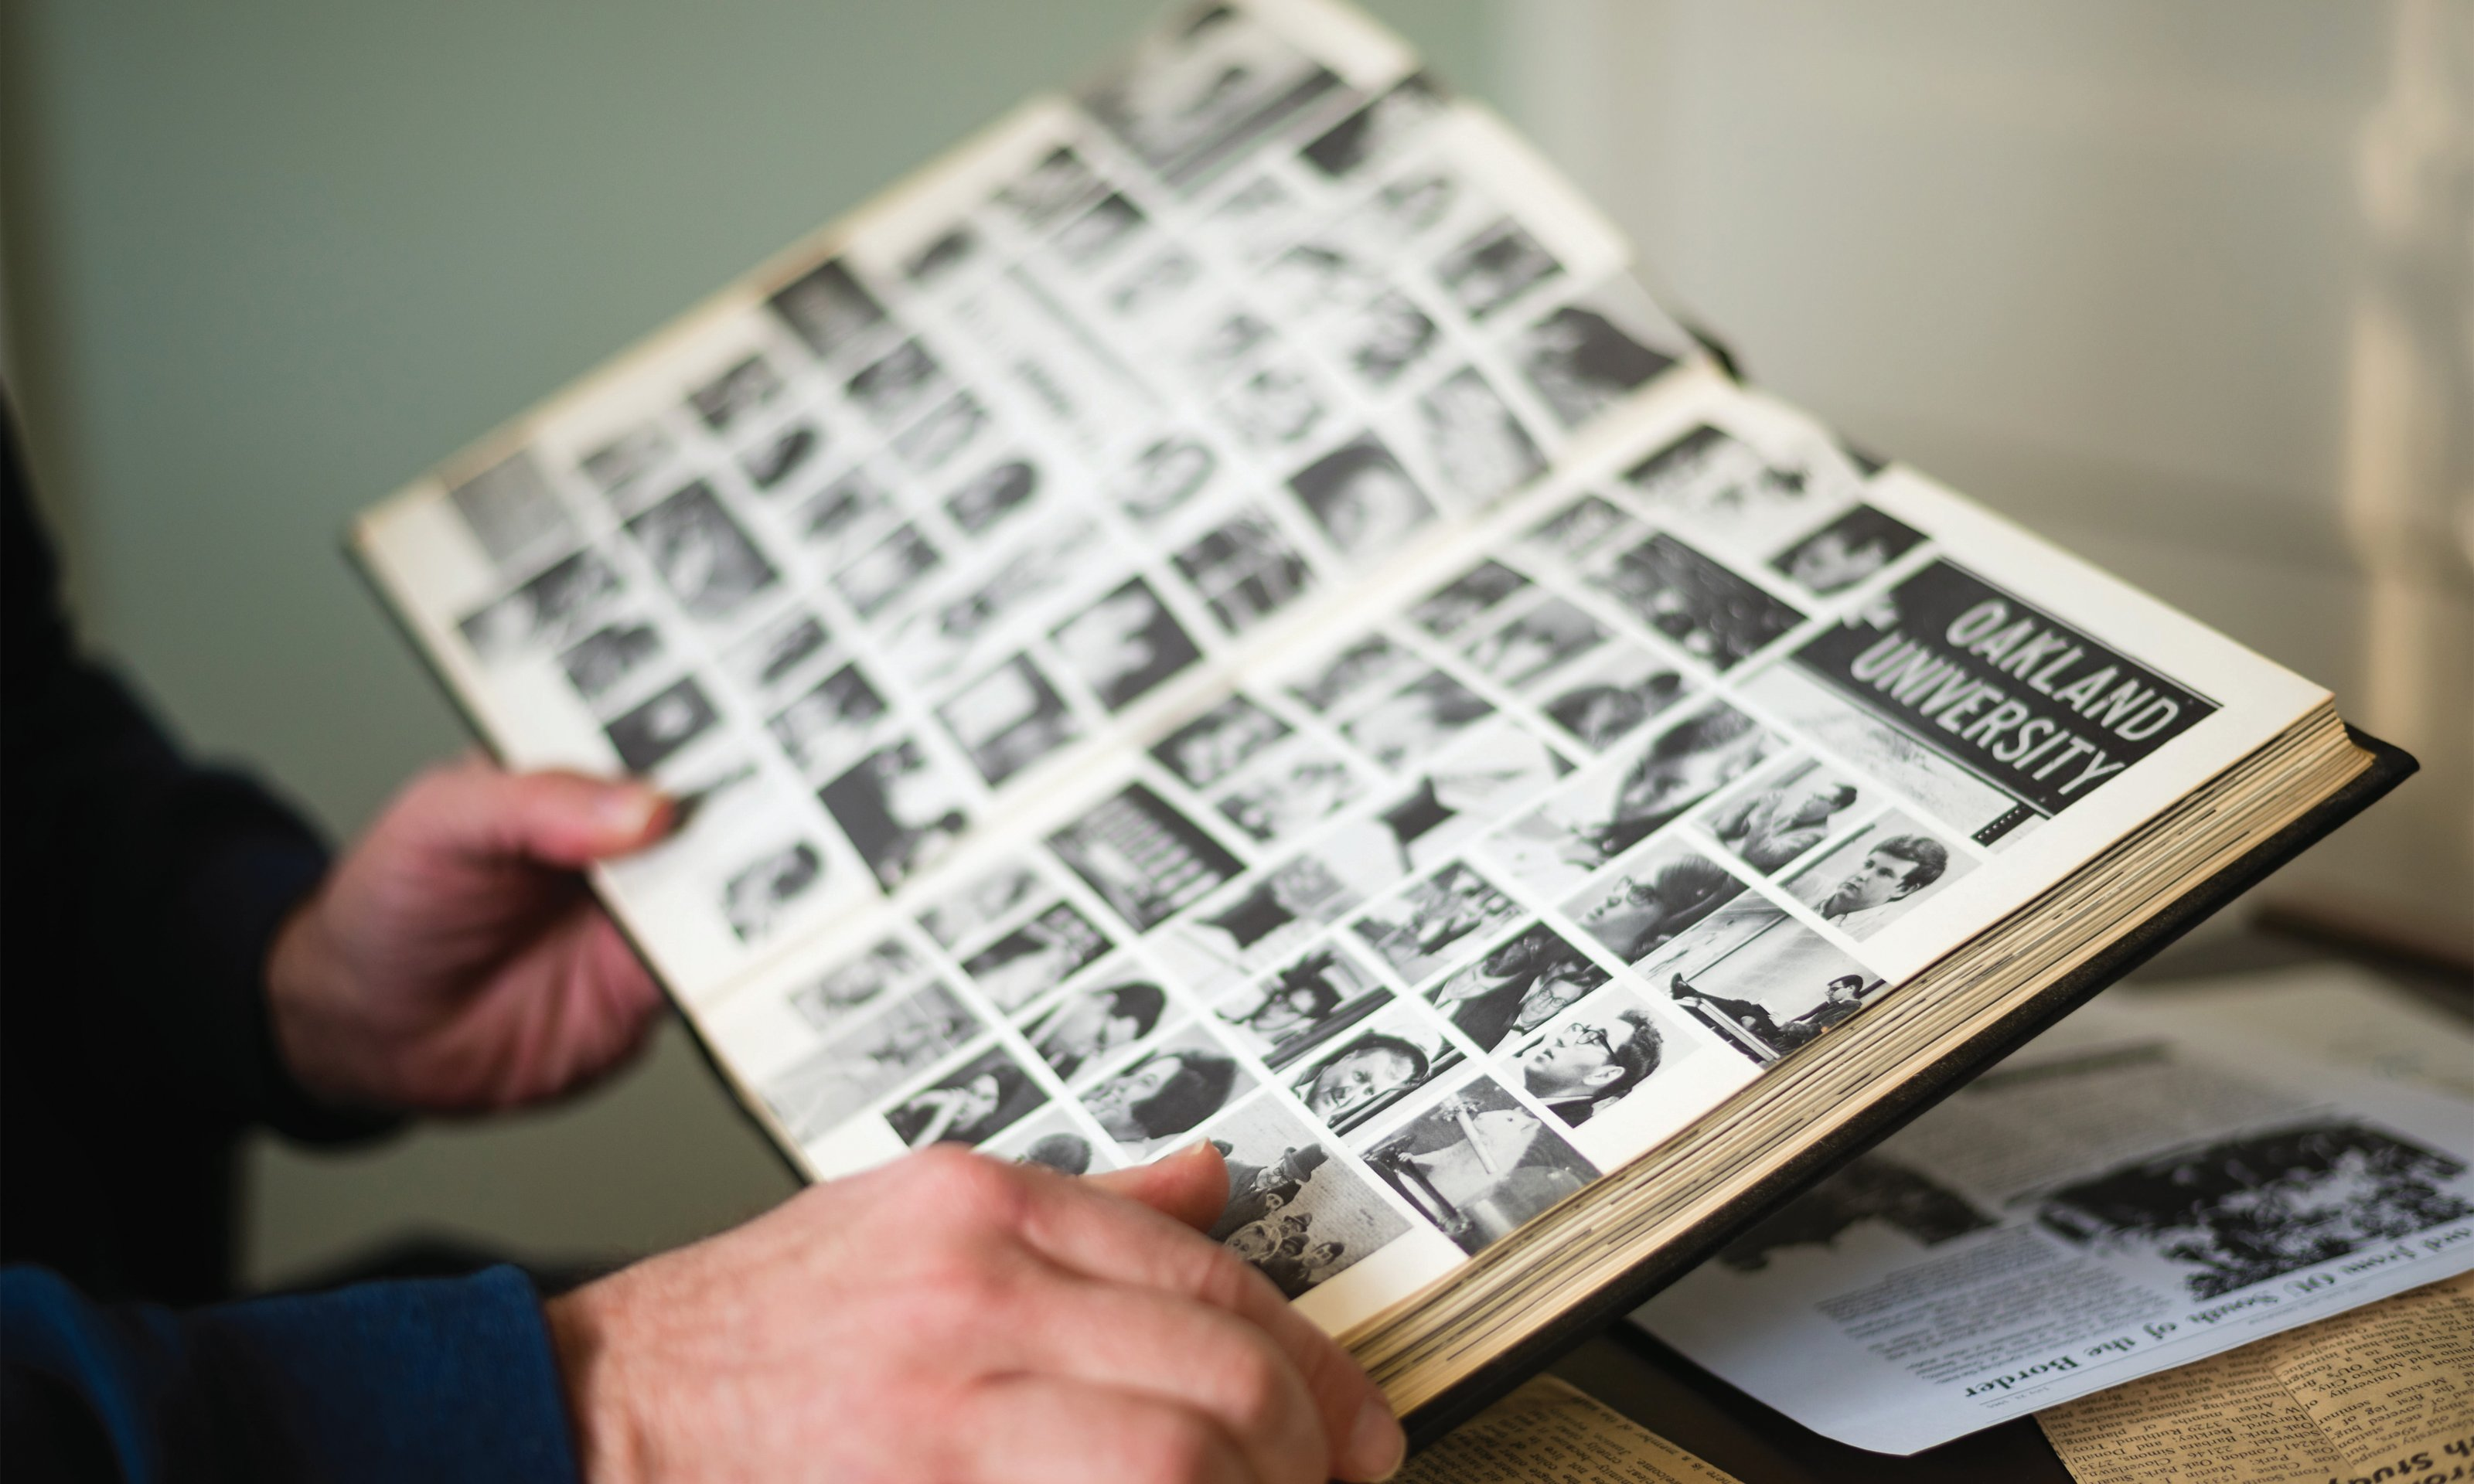 Marty Reisig's hands hold an old Oakland University Pioneer yearbook